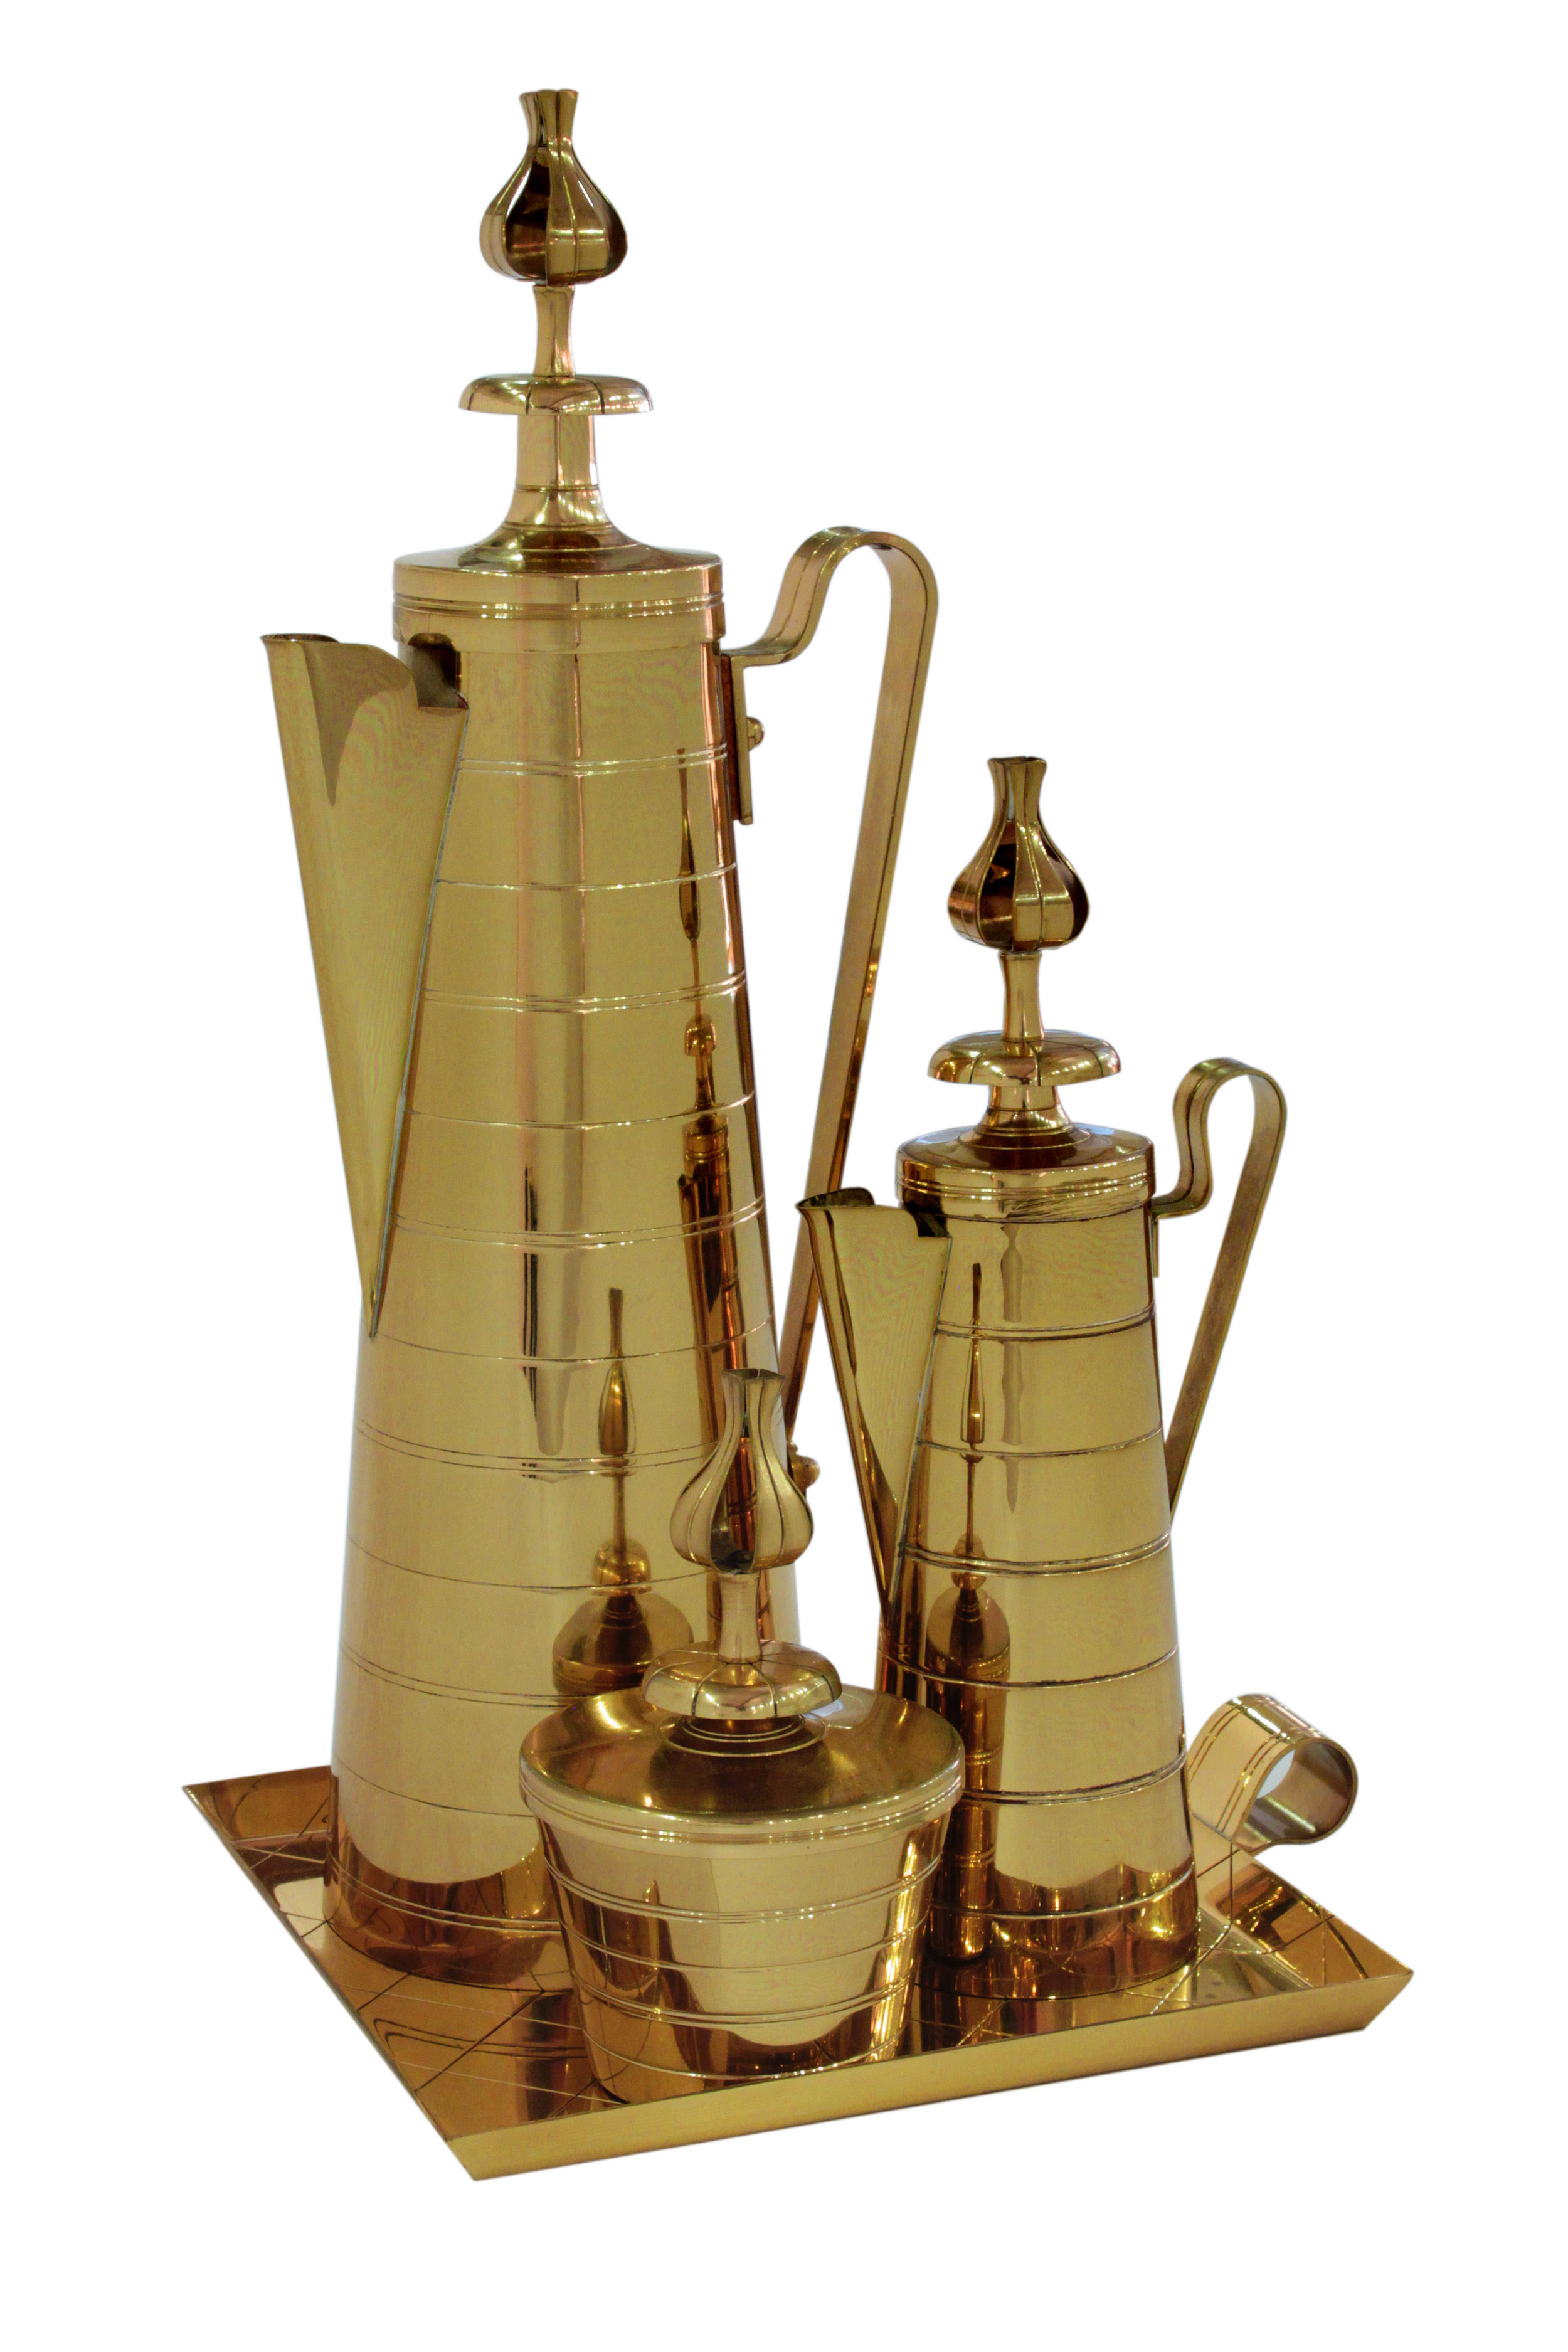 Parzinger 35 brass coffee & tray parzinger47 hires.jpg